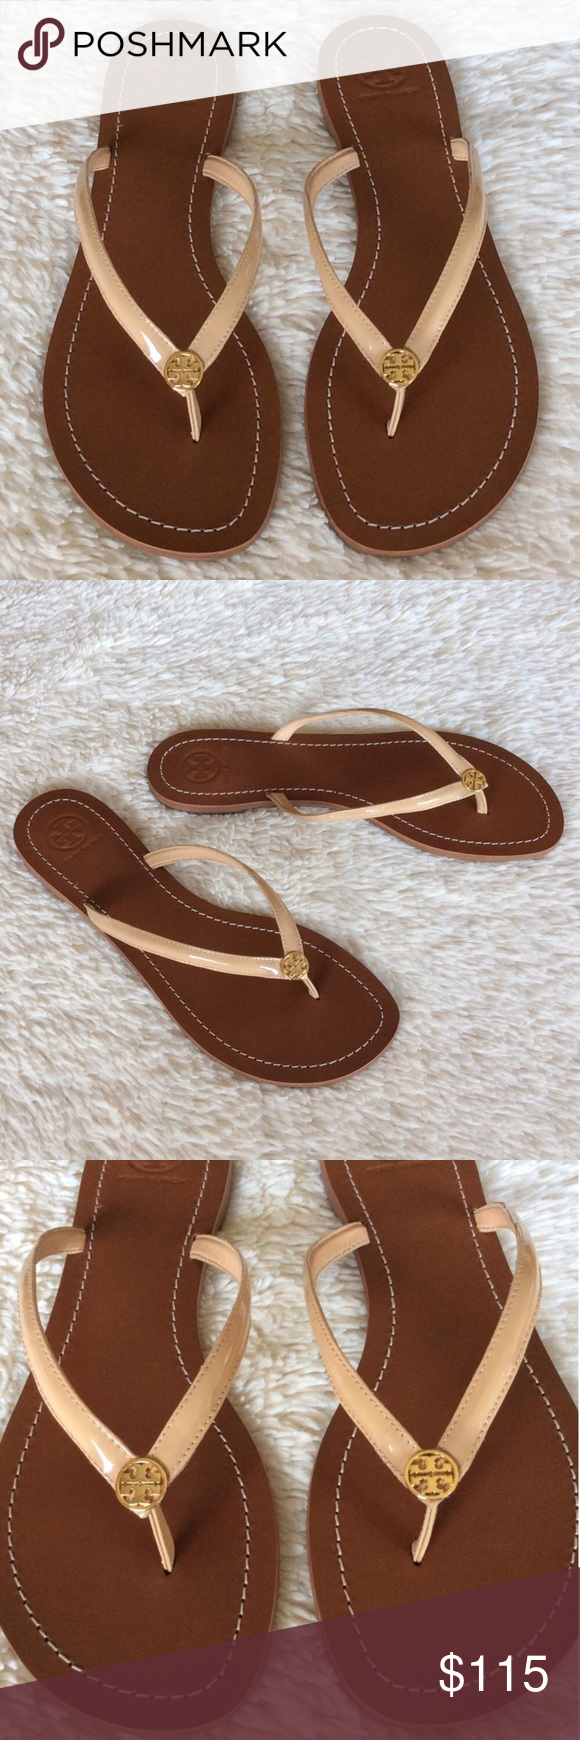 b40f8638f2ad NEW TORY BURCH TERRA THONG SANDALS Authentic. New never used. These sandals  have dust bag